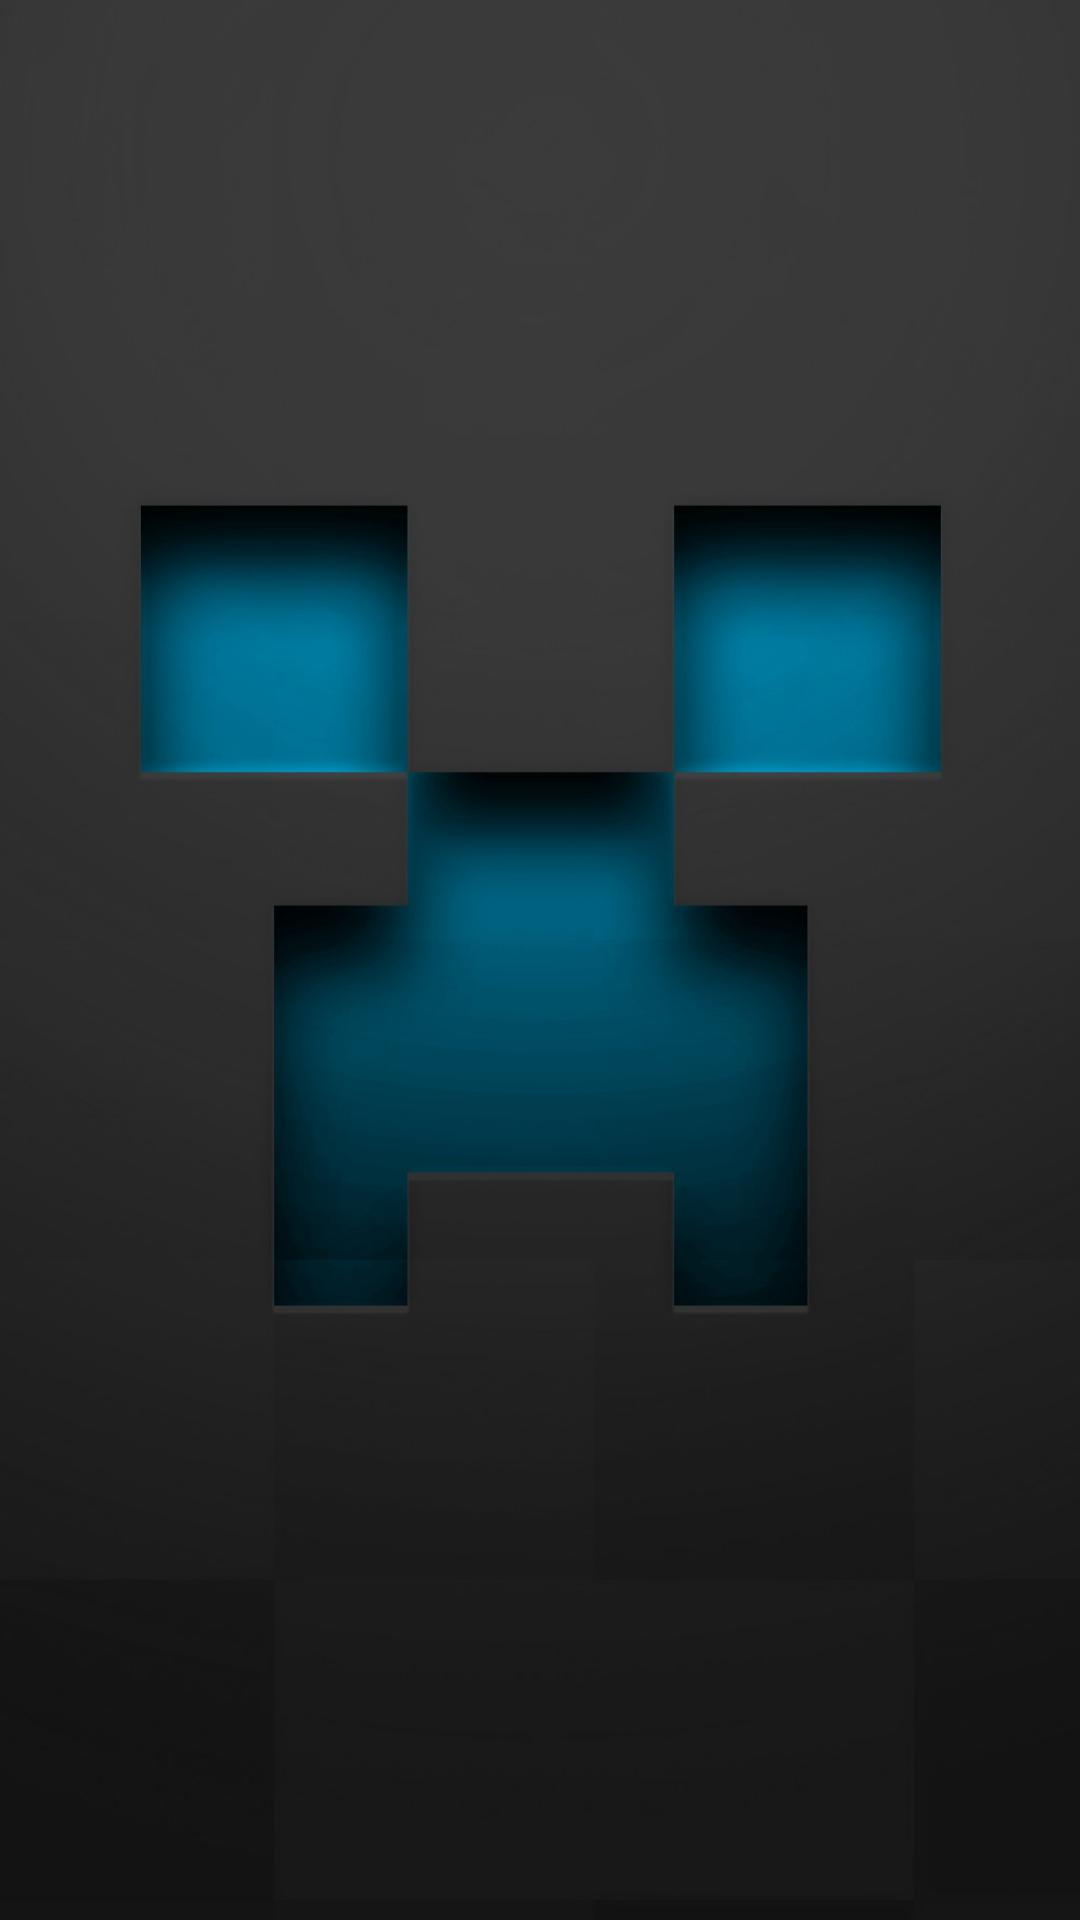 Minecraft blue creeper gray pixelart wallpaper